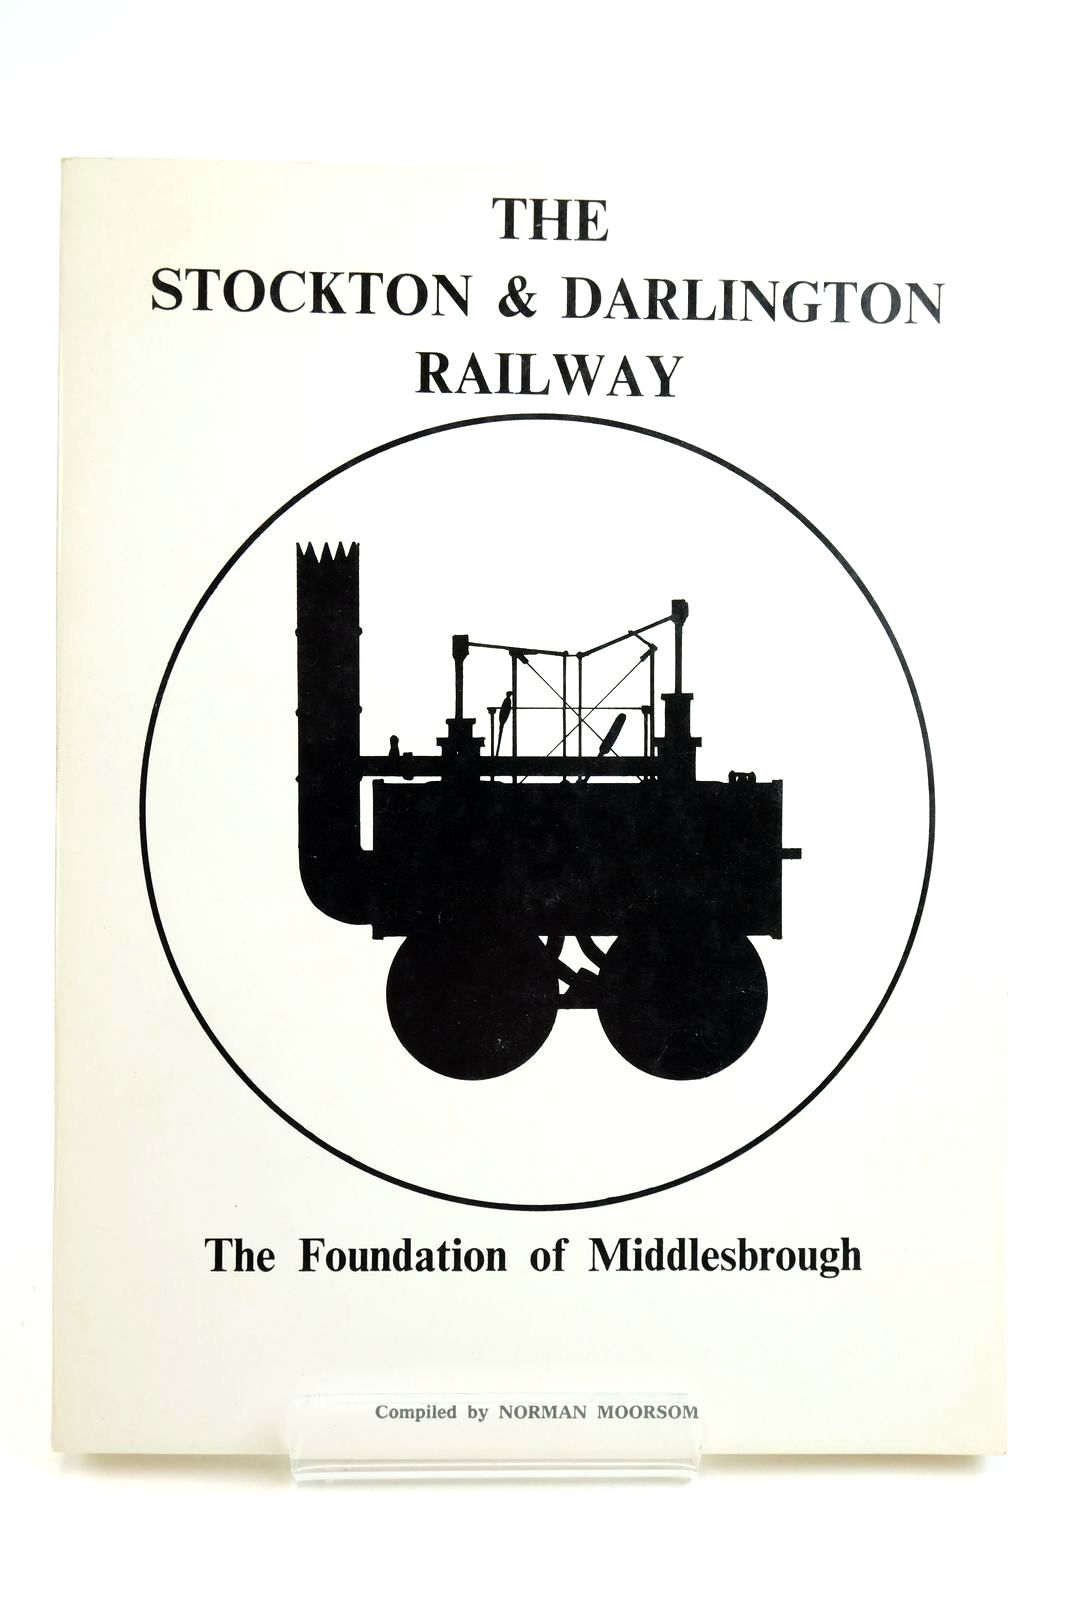 Photo of THE STOCKTON & DARLINGTON RAILWAY THE FOUNDATION OF MIDDLESBOROUGH written by Moorsom, Norman published by J.G. Peckston Ltd. (STOCK CODE: 2133131)  for sale by Stella & Rose's Books